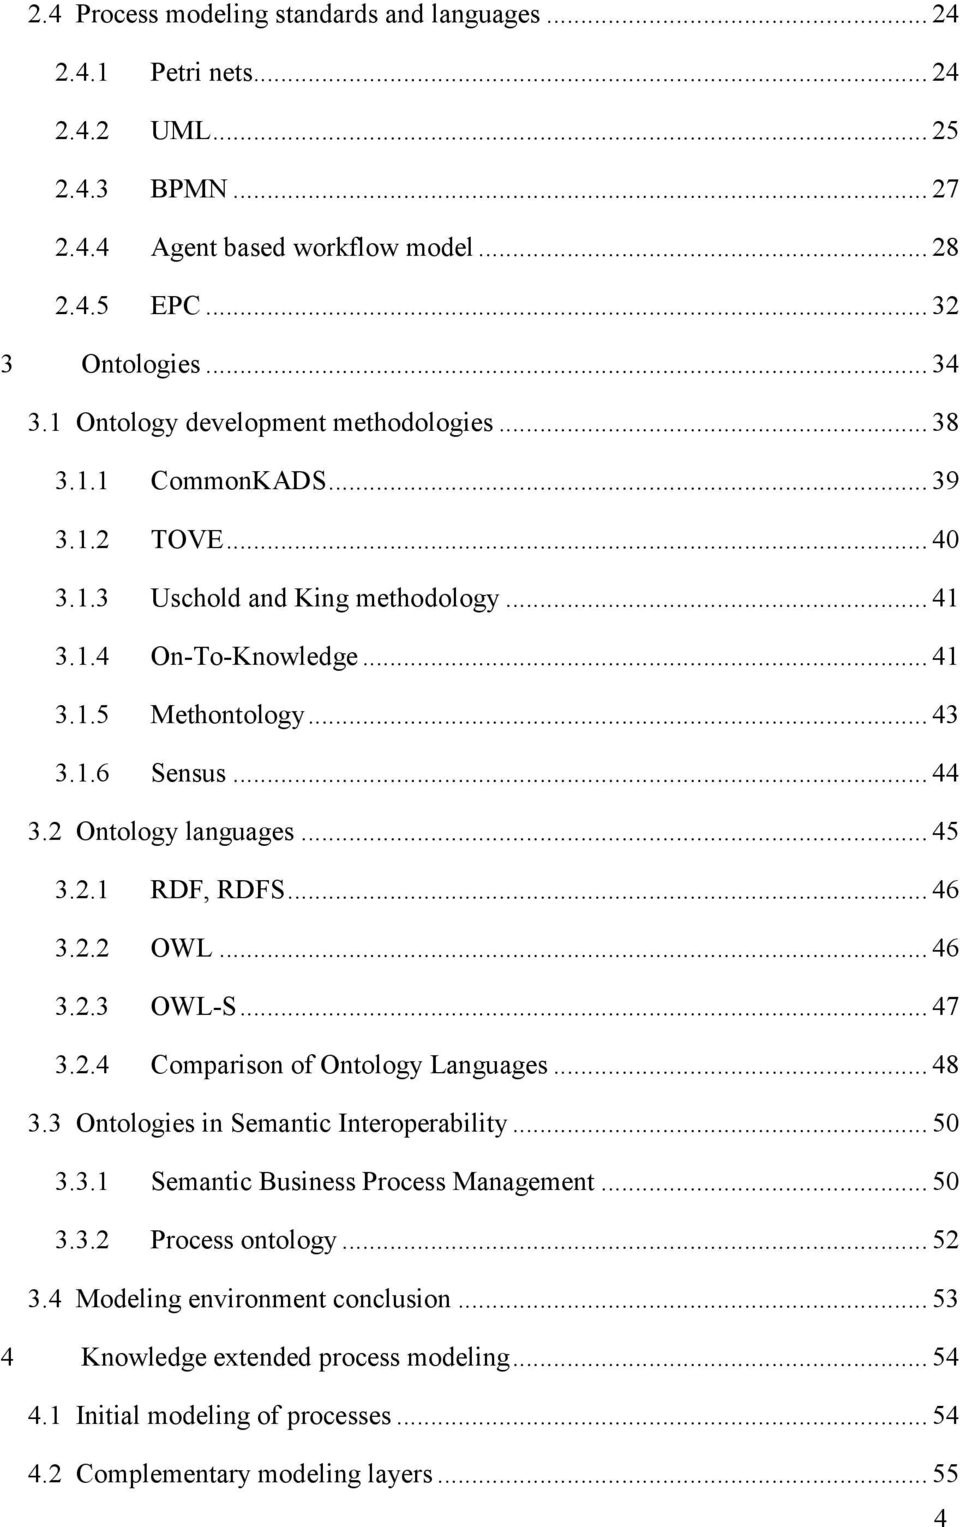 2 Ontology languages... 45 3.2.1 RDF, RDFS... 46 3.2.2 OWL... 46 3.2.3 OWL-S... 47 3.2.4 Comparison of Ontology Languages... 48 3.3 Ontologies in Semantic Interoperability... 50 3.3.1 Semantic Business Process Management.